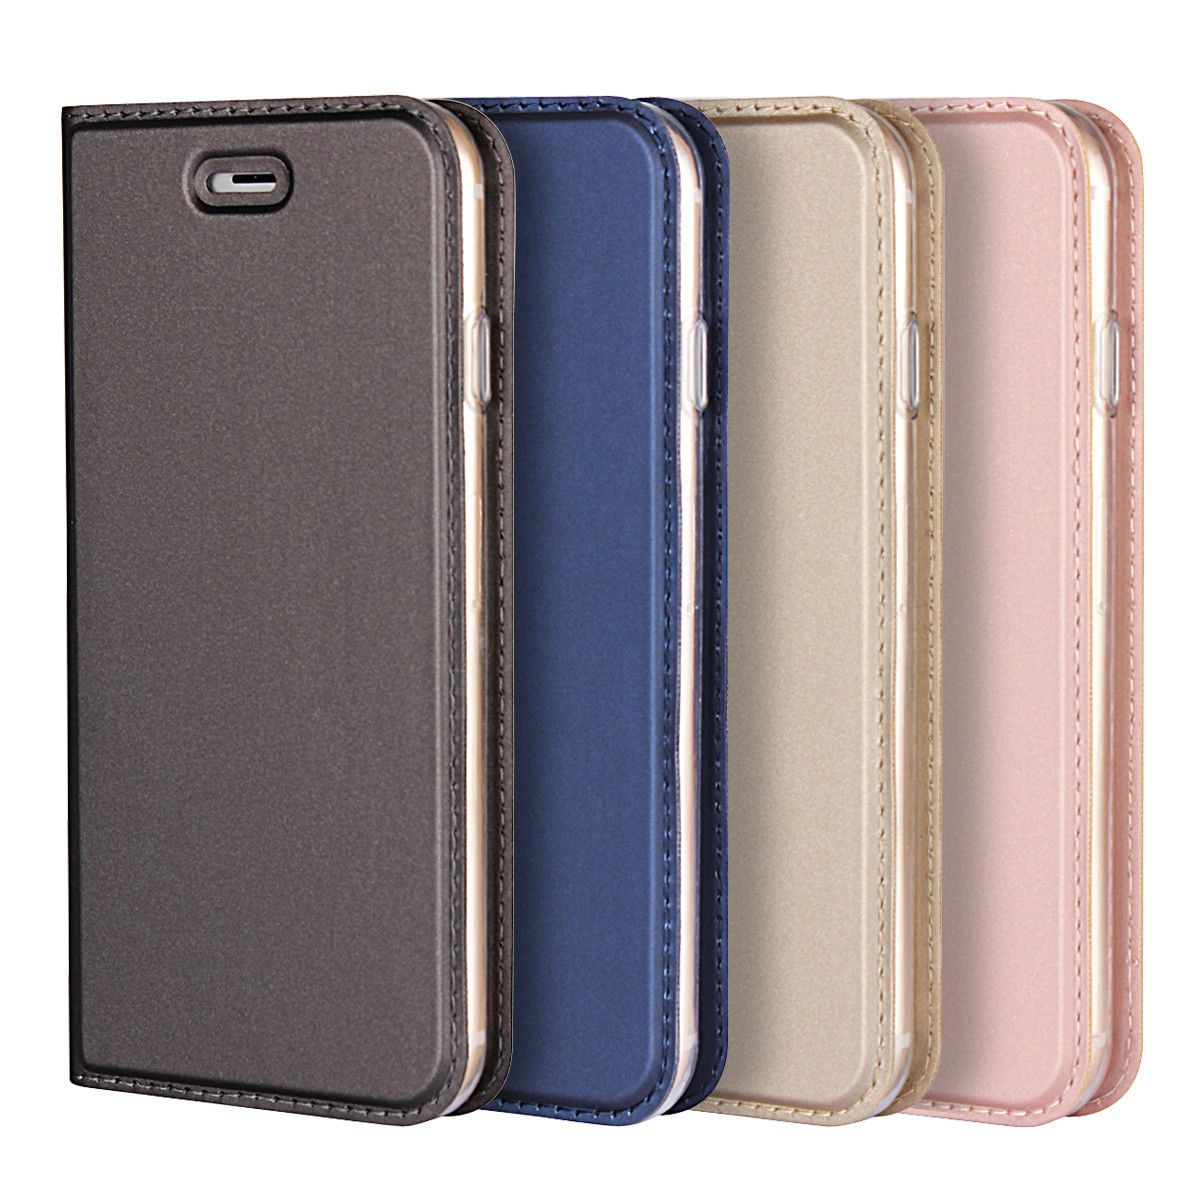 factory price 1760e 7c2dc $4.39 - For Iphone X/8 Plus/7 Plus/6S Plus Slim Flip Leather ...